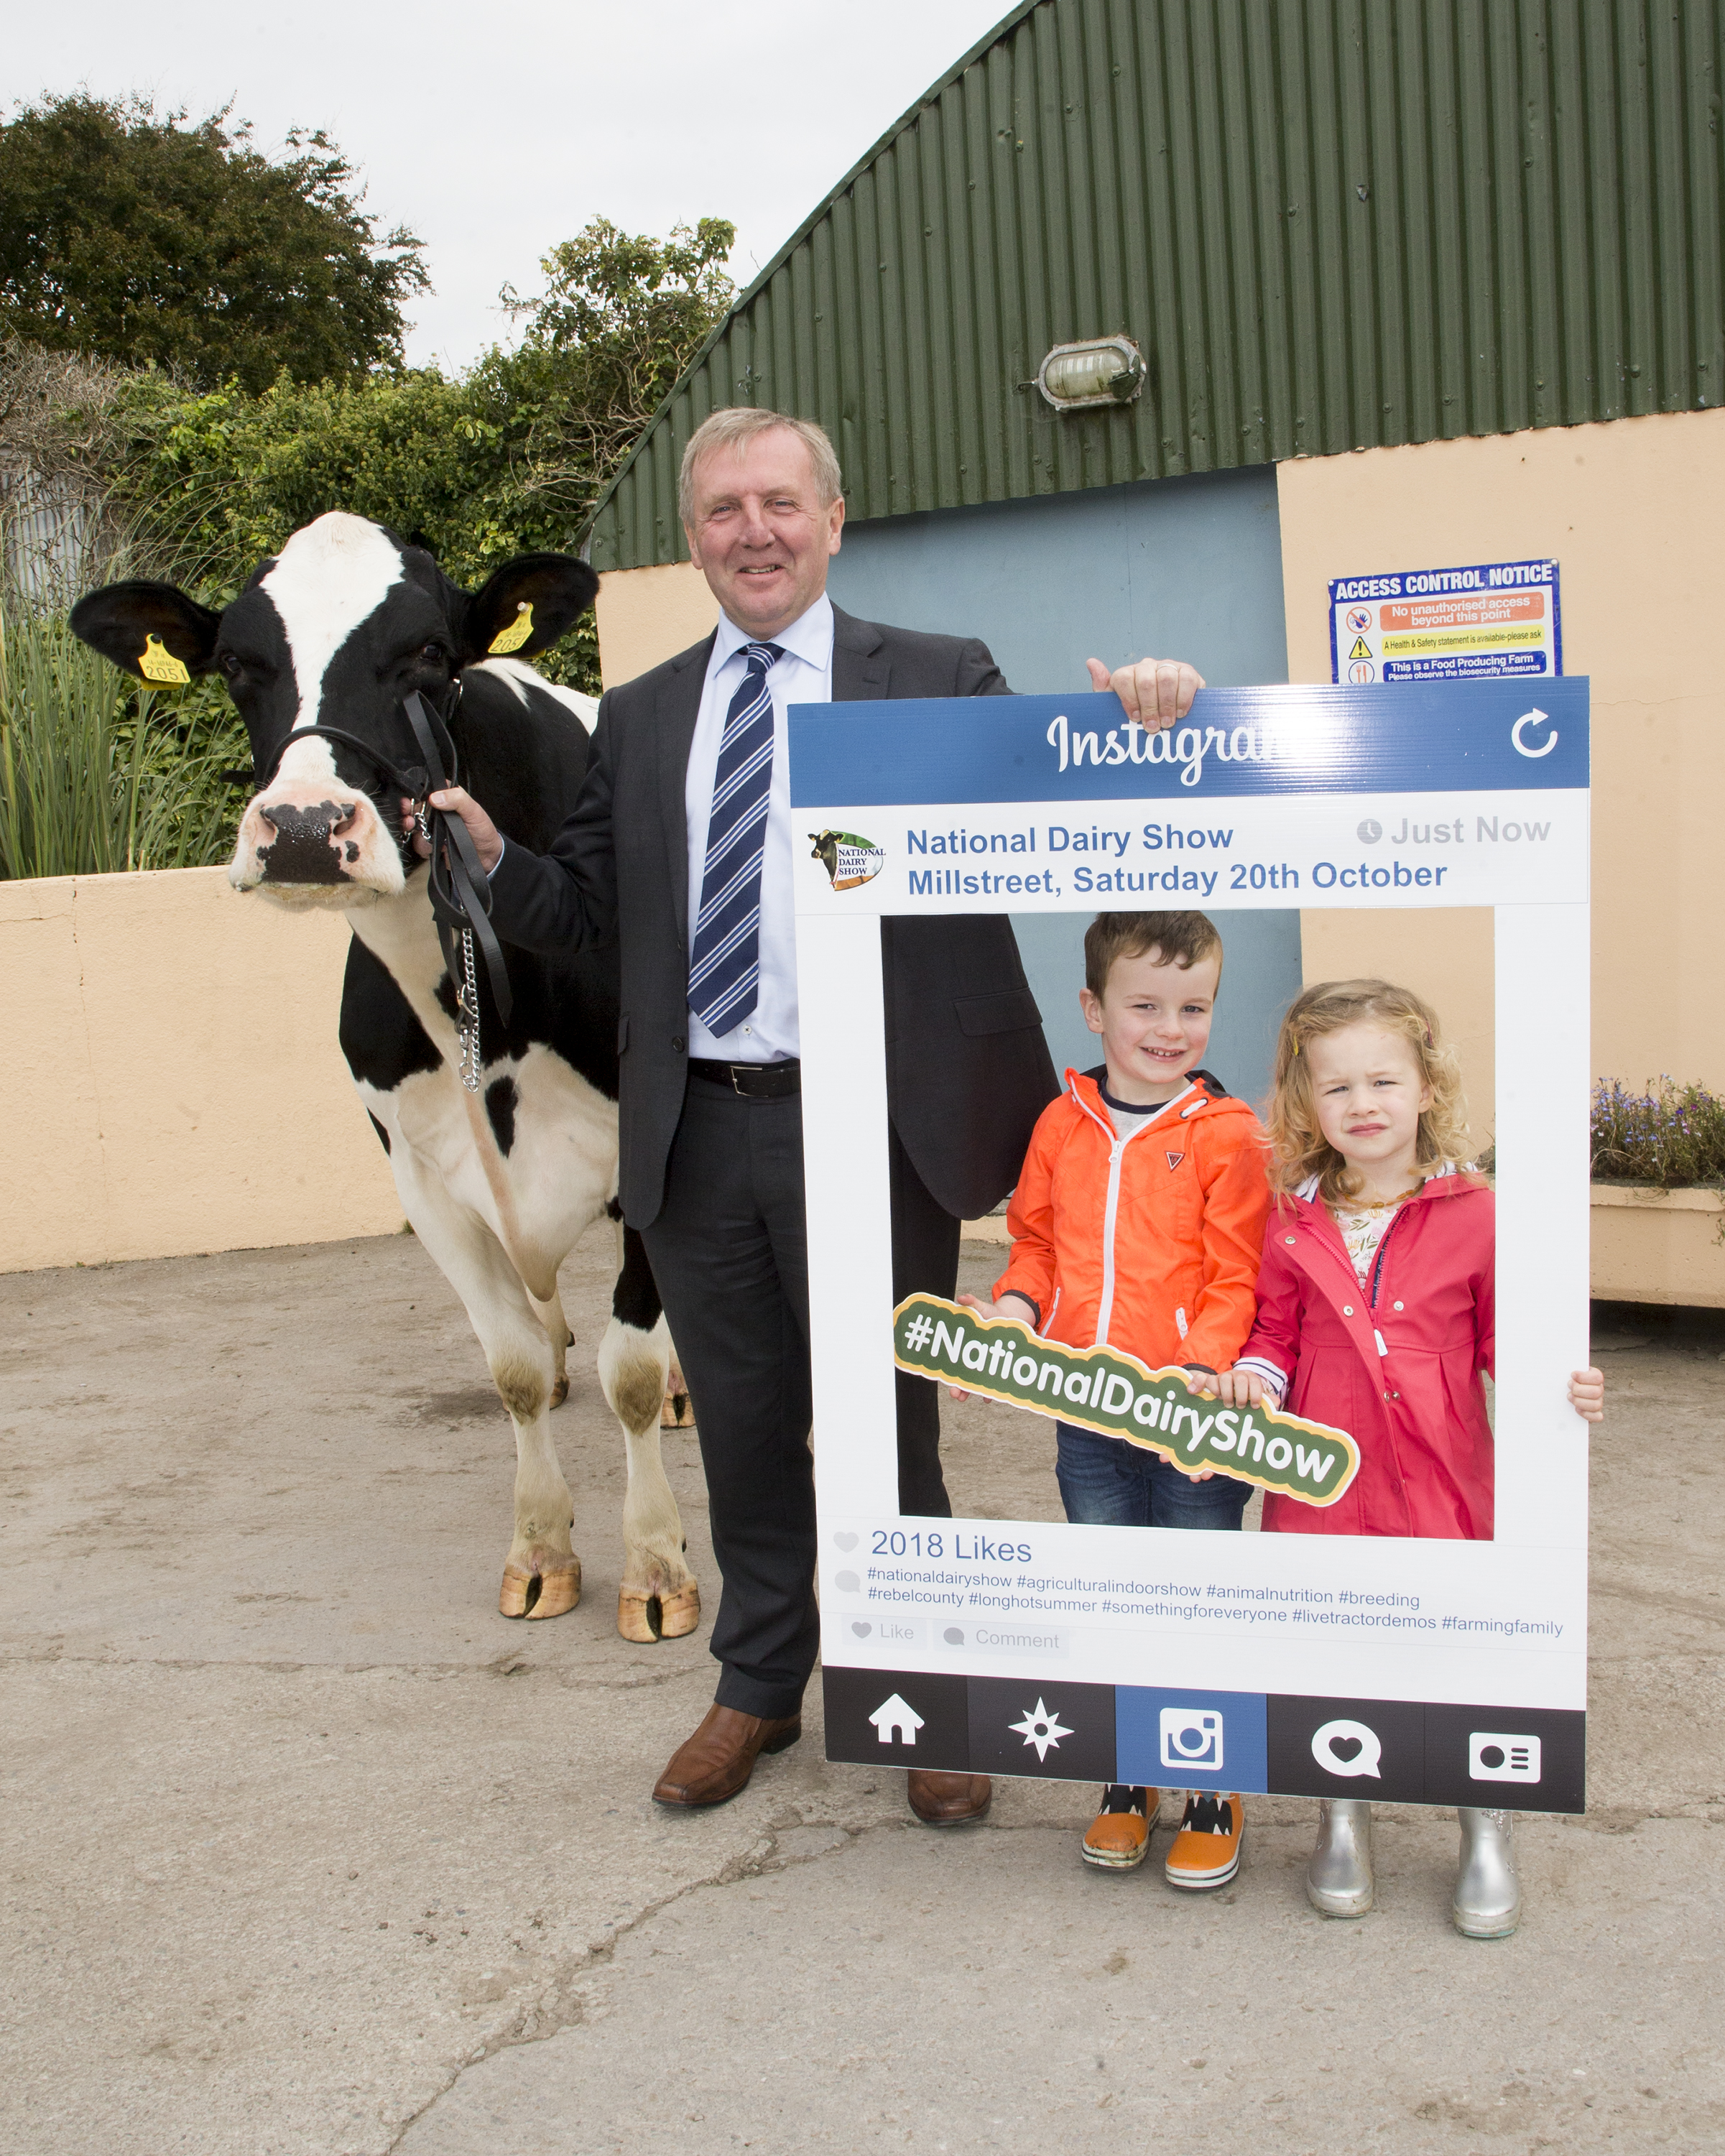 Pictured at the launch of the National Dairy Show being held in Millstreet on Saturday 20th 2018 is  Minister Michael Creed with Isaac & Pippa O'Mahony.